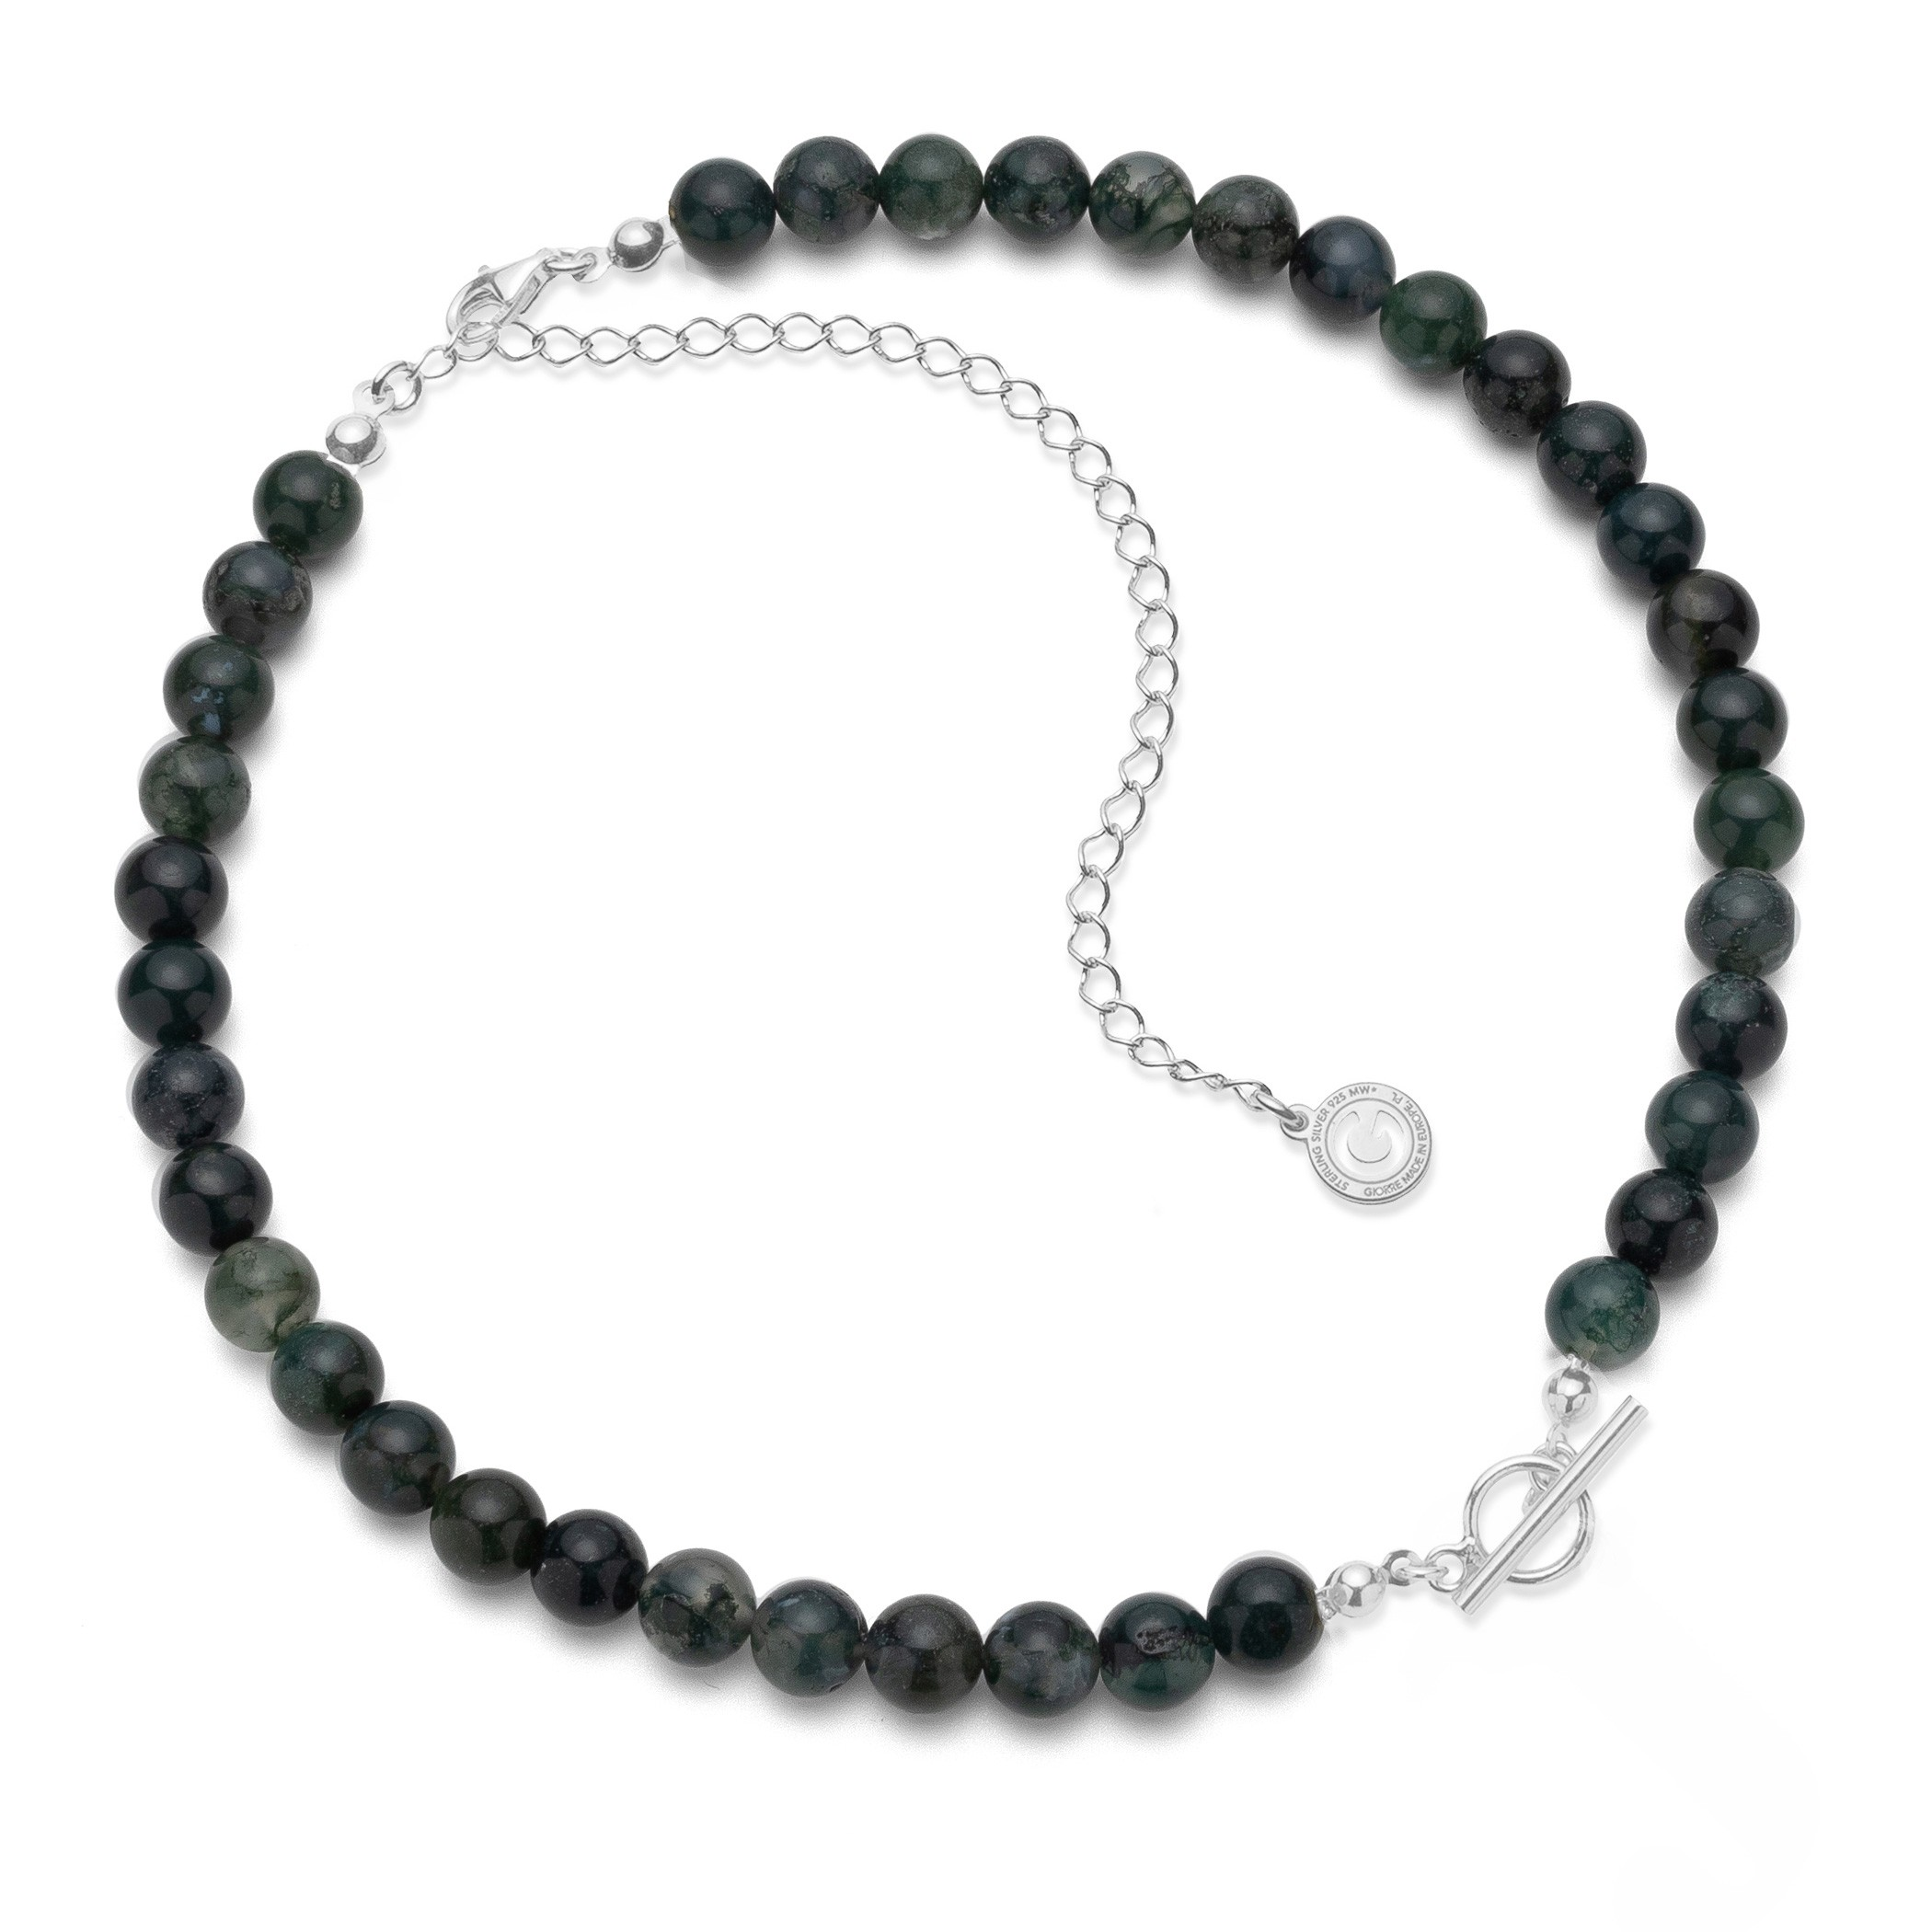 Choker with white dark natural stones green agate, charms base, Silver 925